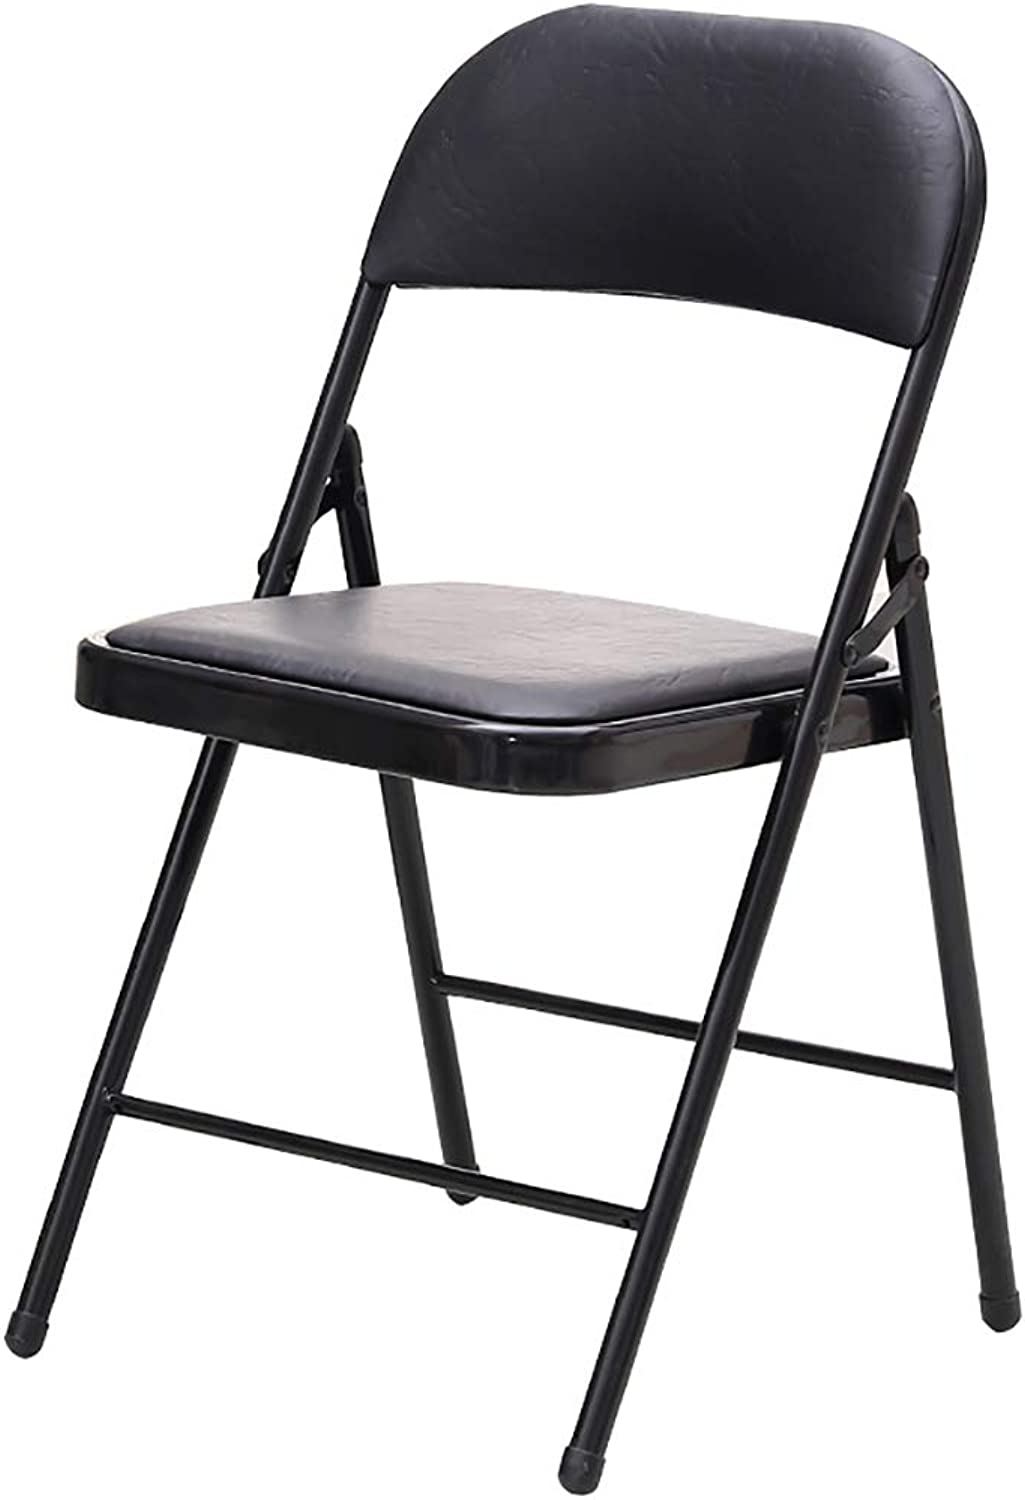 XHLZDY Folding Chair, Computer Chair Office Meeting Chair Home Leisure Chair Meeting Reception Chair (45×46×79cm) (color   Black)